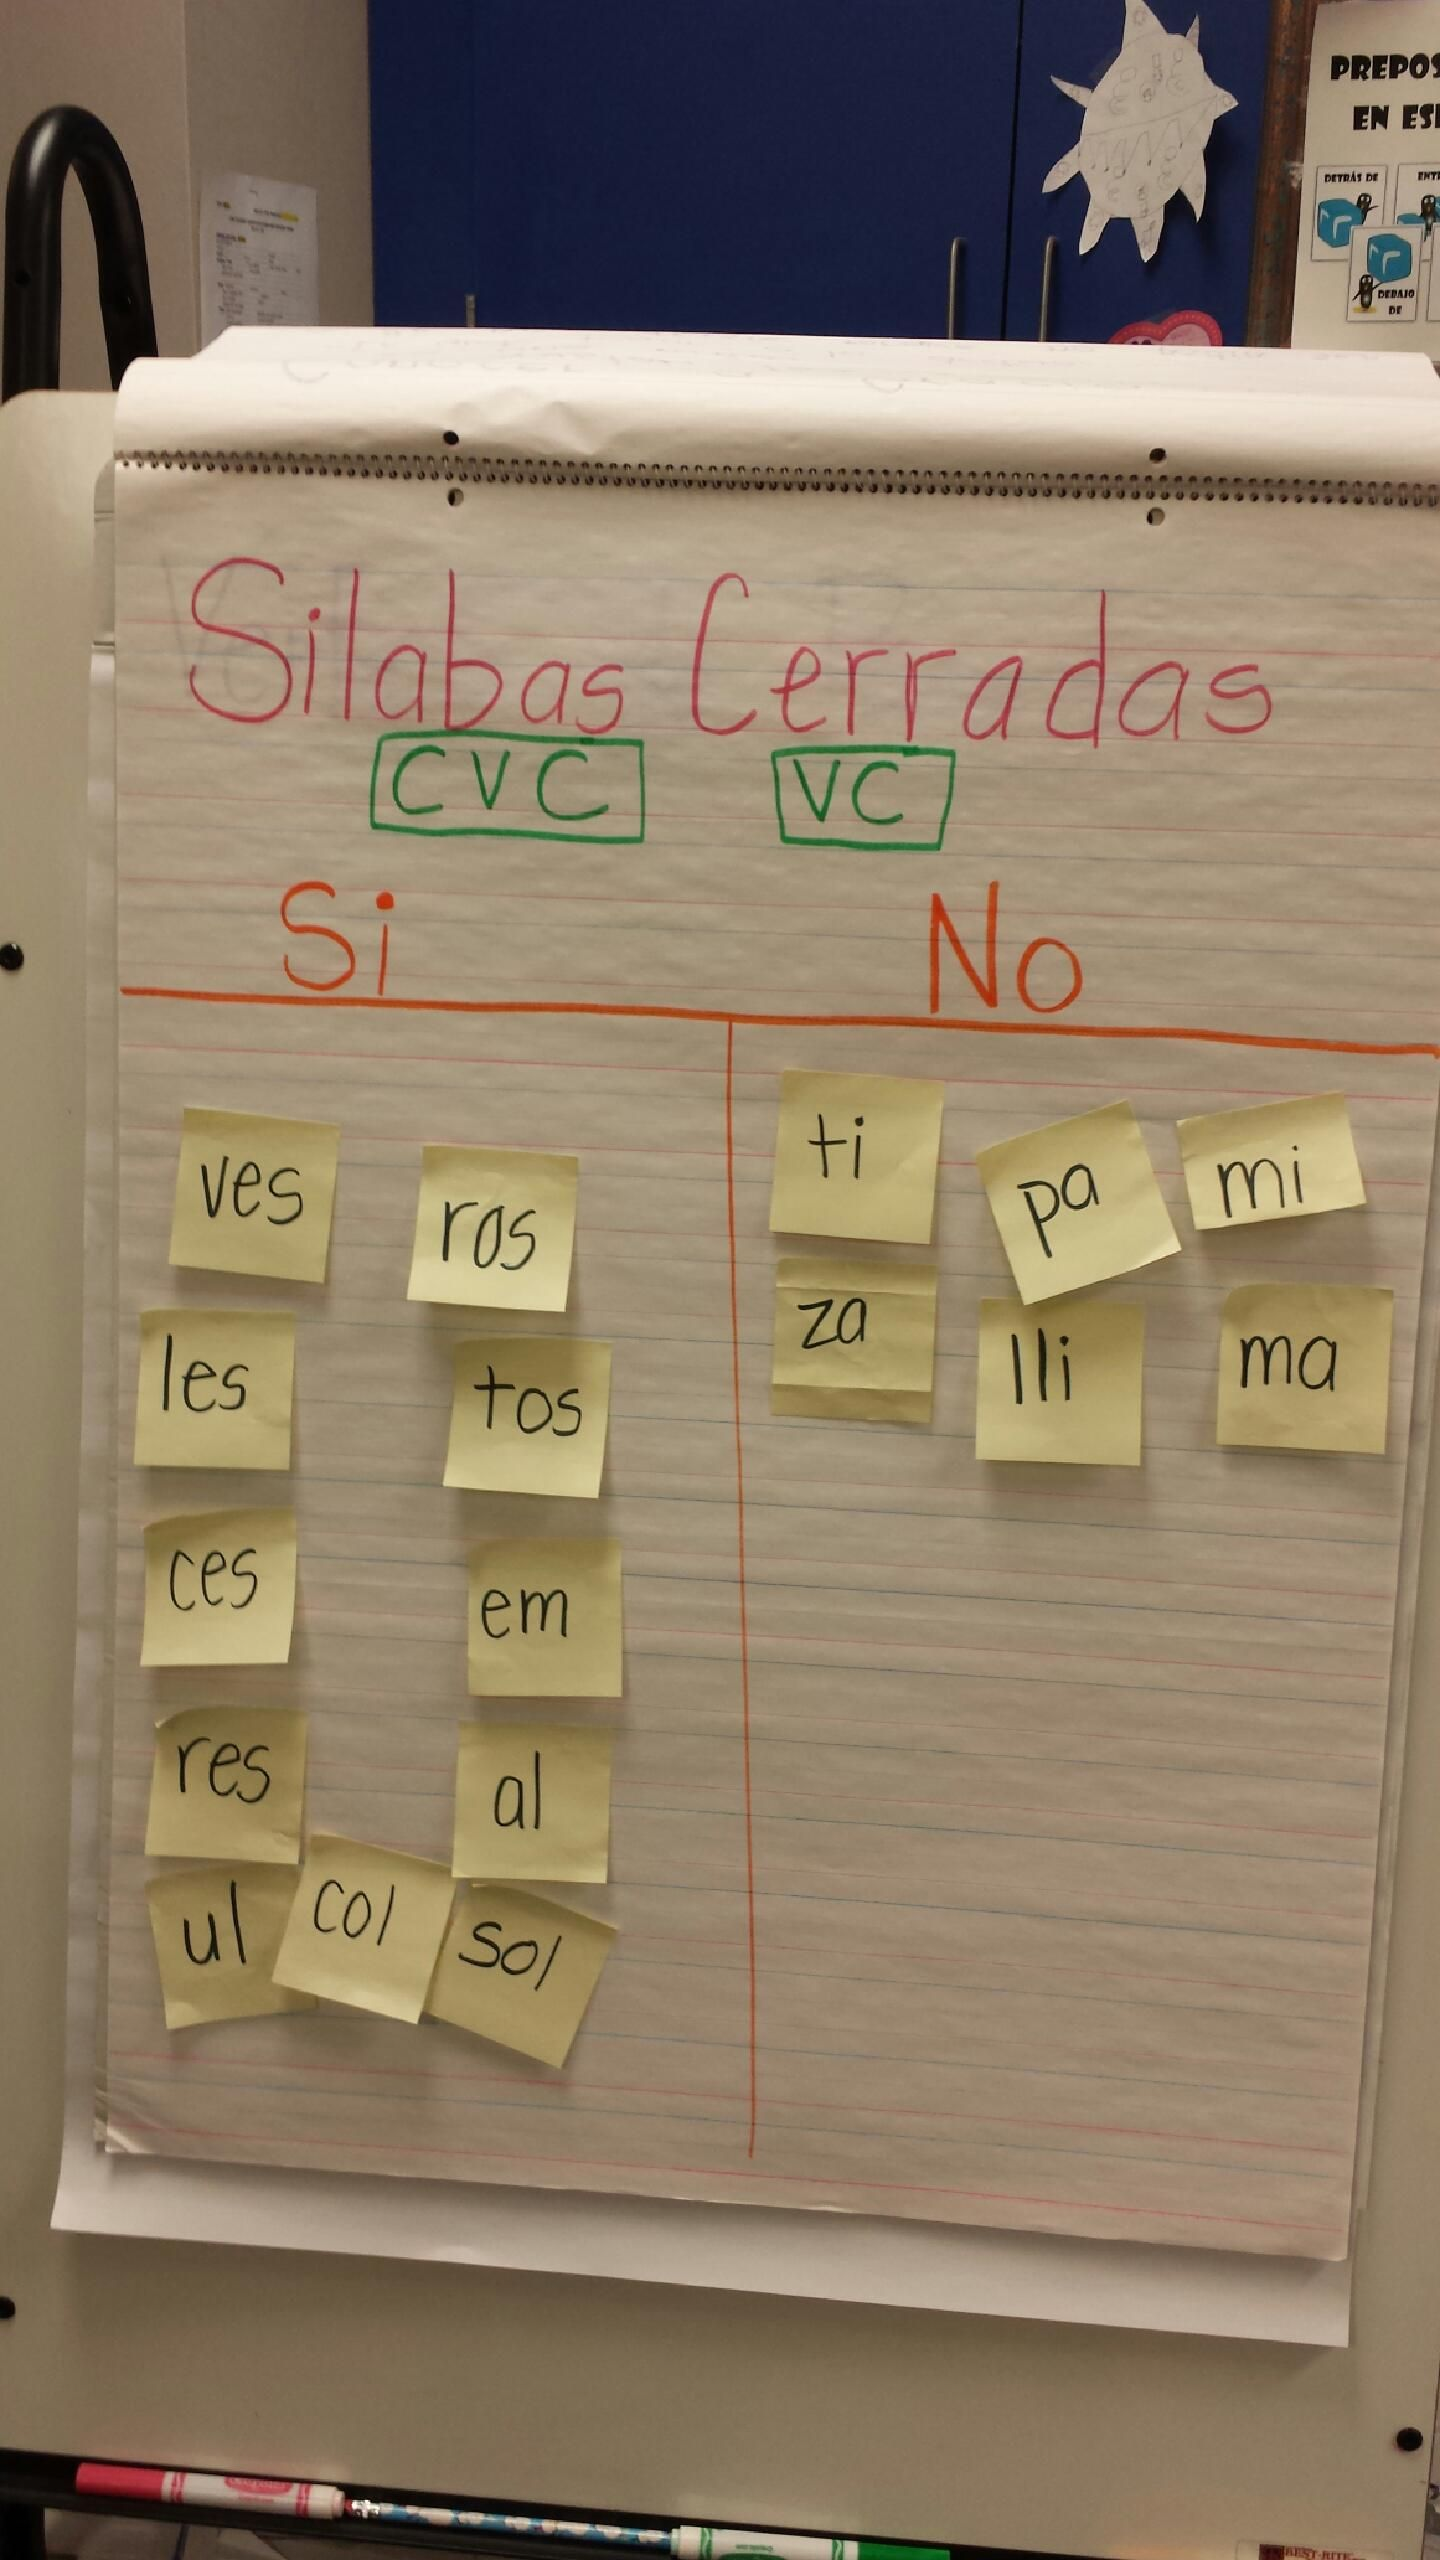 We Used This Chart To Review Silabas Cerradas Bilingual